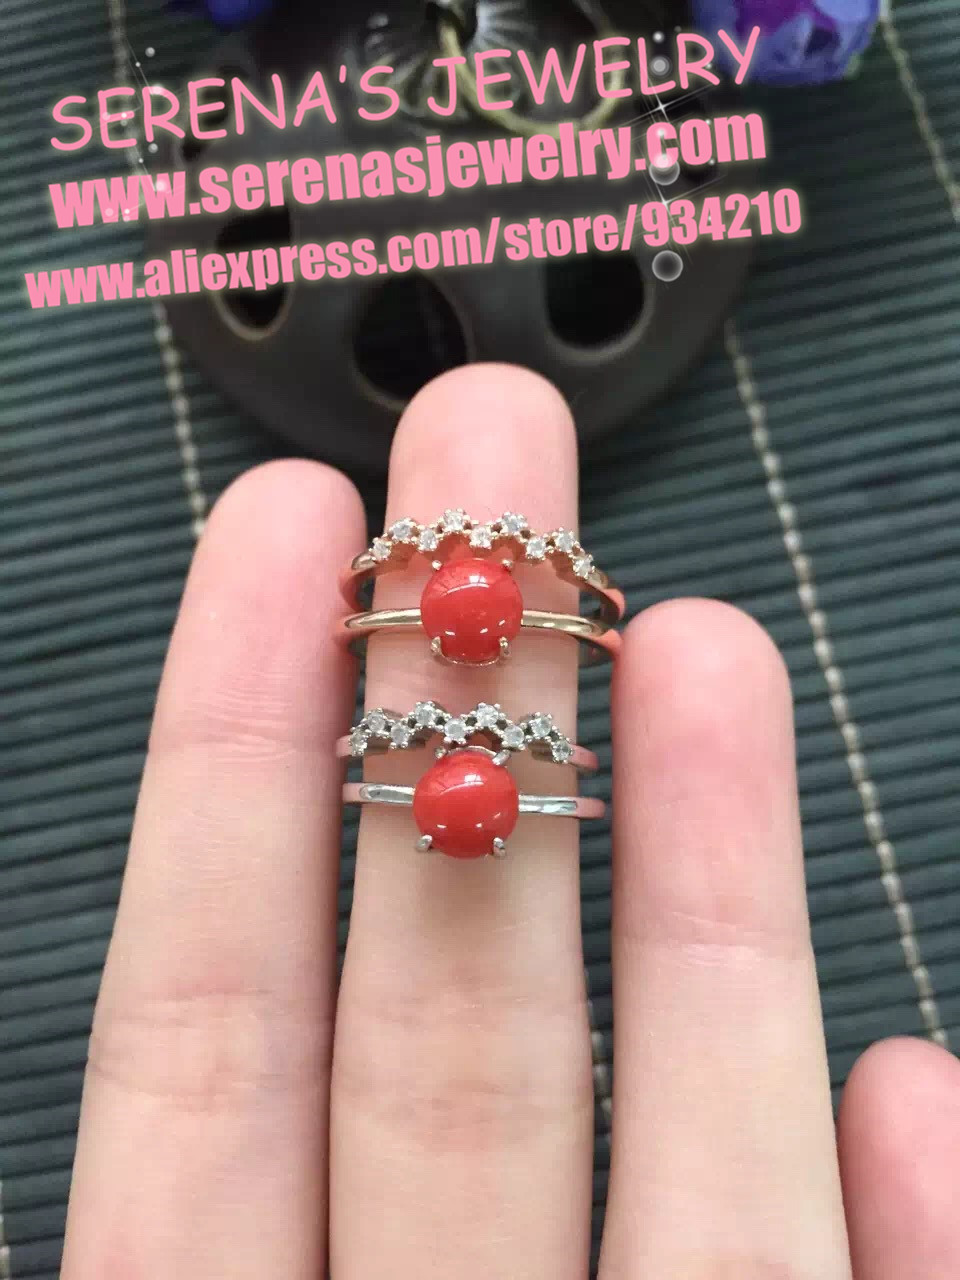 on sale discount girls gift mum birthday present real 925 sterling silver natural red coral ring egg surfce 6.5mm